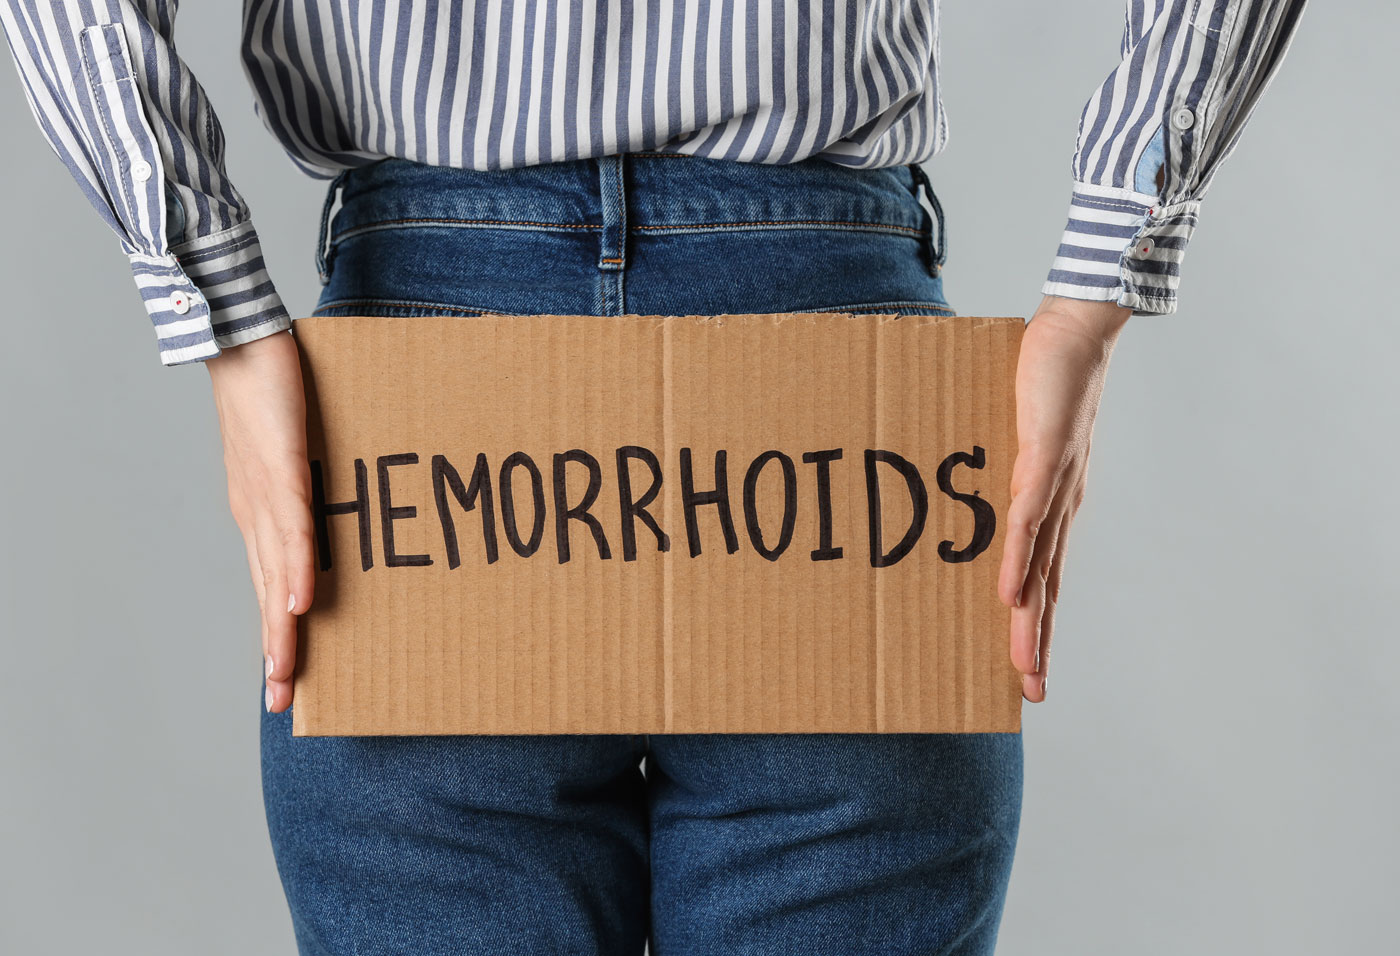 What are hemorrhoids? Hemorrhoids, sometimes referred to piles, are swollen, inflamed veins around your anus or the lower part of your rectum. There are two types: External hemorrhoids, which form under the skin around your anus Internal hemorrhoids, which form in the lining of your anus and lower rectum What causes hemorrhoids? Hemorrhoids happen when there is too much pressure on the veins around the anus. This can be caused by: Straining during bowel movements Sitting on the toilet for long periods of time Chronic constipation or diarrhea A low-fiber diet Weakening of the supporting tissues in your anus and rectum. This can happen with aging and pregnancy. Frequently lifting heavy objects What are the symptoms of hemorrhoids? The symptoms of hemorrhoids depend on which type you have: With external hemorrhoids, you may have: Anal itching One or more hard, tender lumps near your anus Anal pain, especially when sitting Too much straining, rubbing, or cleaning around your anus may make your symptoms worse. For many people, the symptoms of external hemorrhoids go away within a few days. With internal hemorrhoids, you may have: Bleeding from your rectum - you would see bright red blood in your stool, on toilet paper, or in the toilet bowl after a bowel movement Prolapse, which is a hemorrhoid that has fallen through your anal opening Internal hemorrhoids are usually not painful unless they are prolapsed. Prolapsed internal hemorrhoids may cause pain and discomfort. How can I treat hemorrhoids?